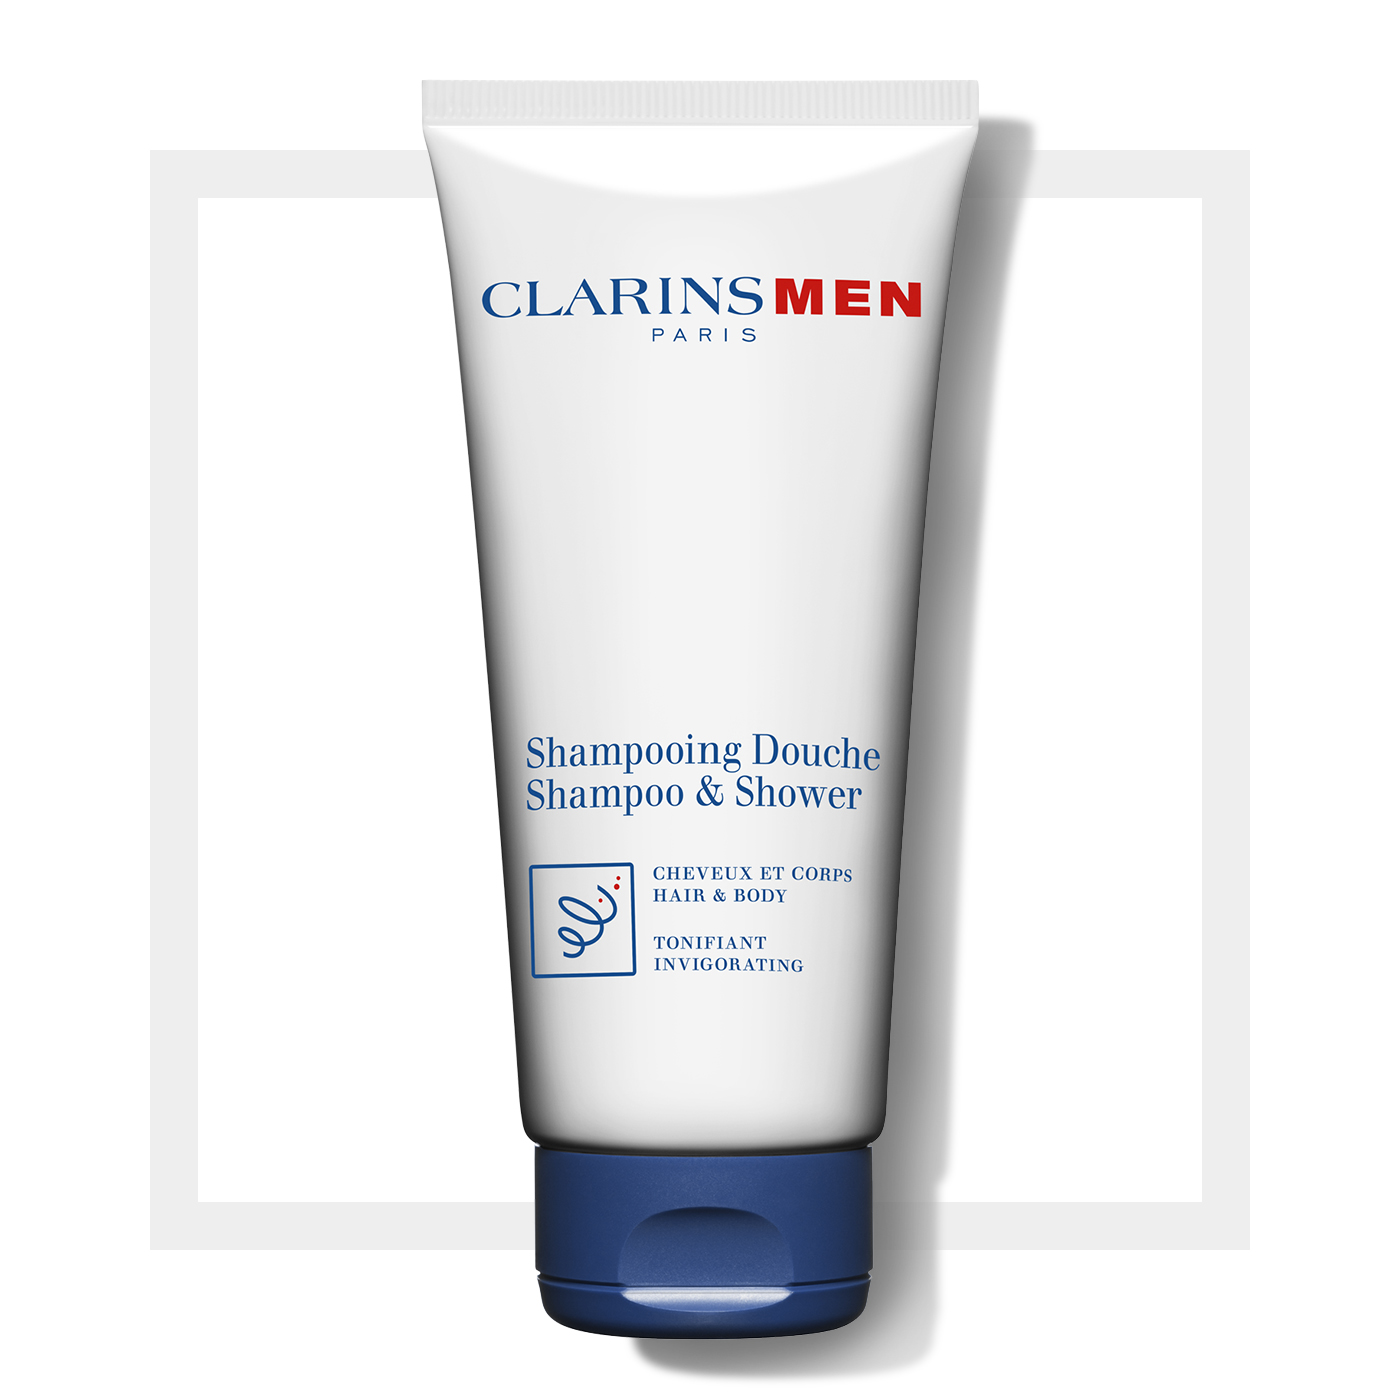 Clarinsmen Shampoo And Shower Hair And Body Cleansing